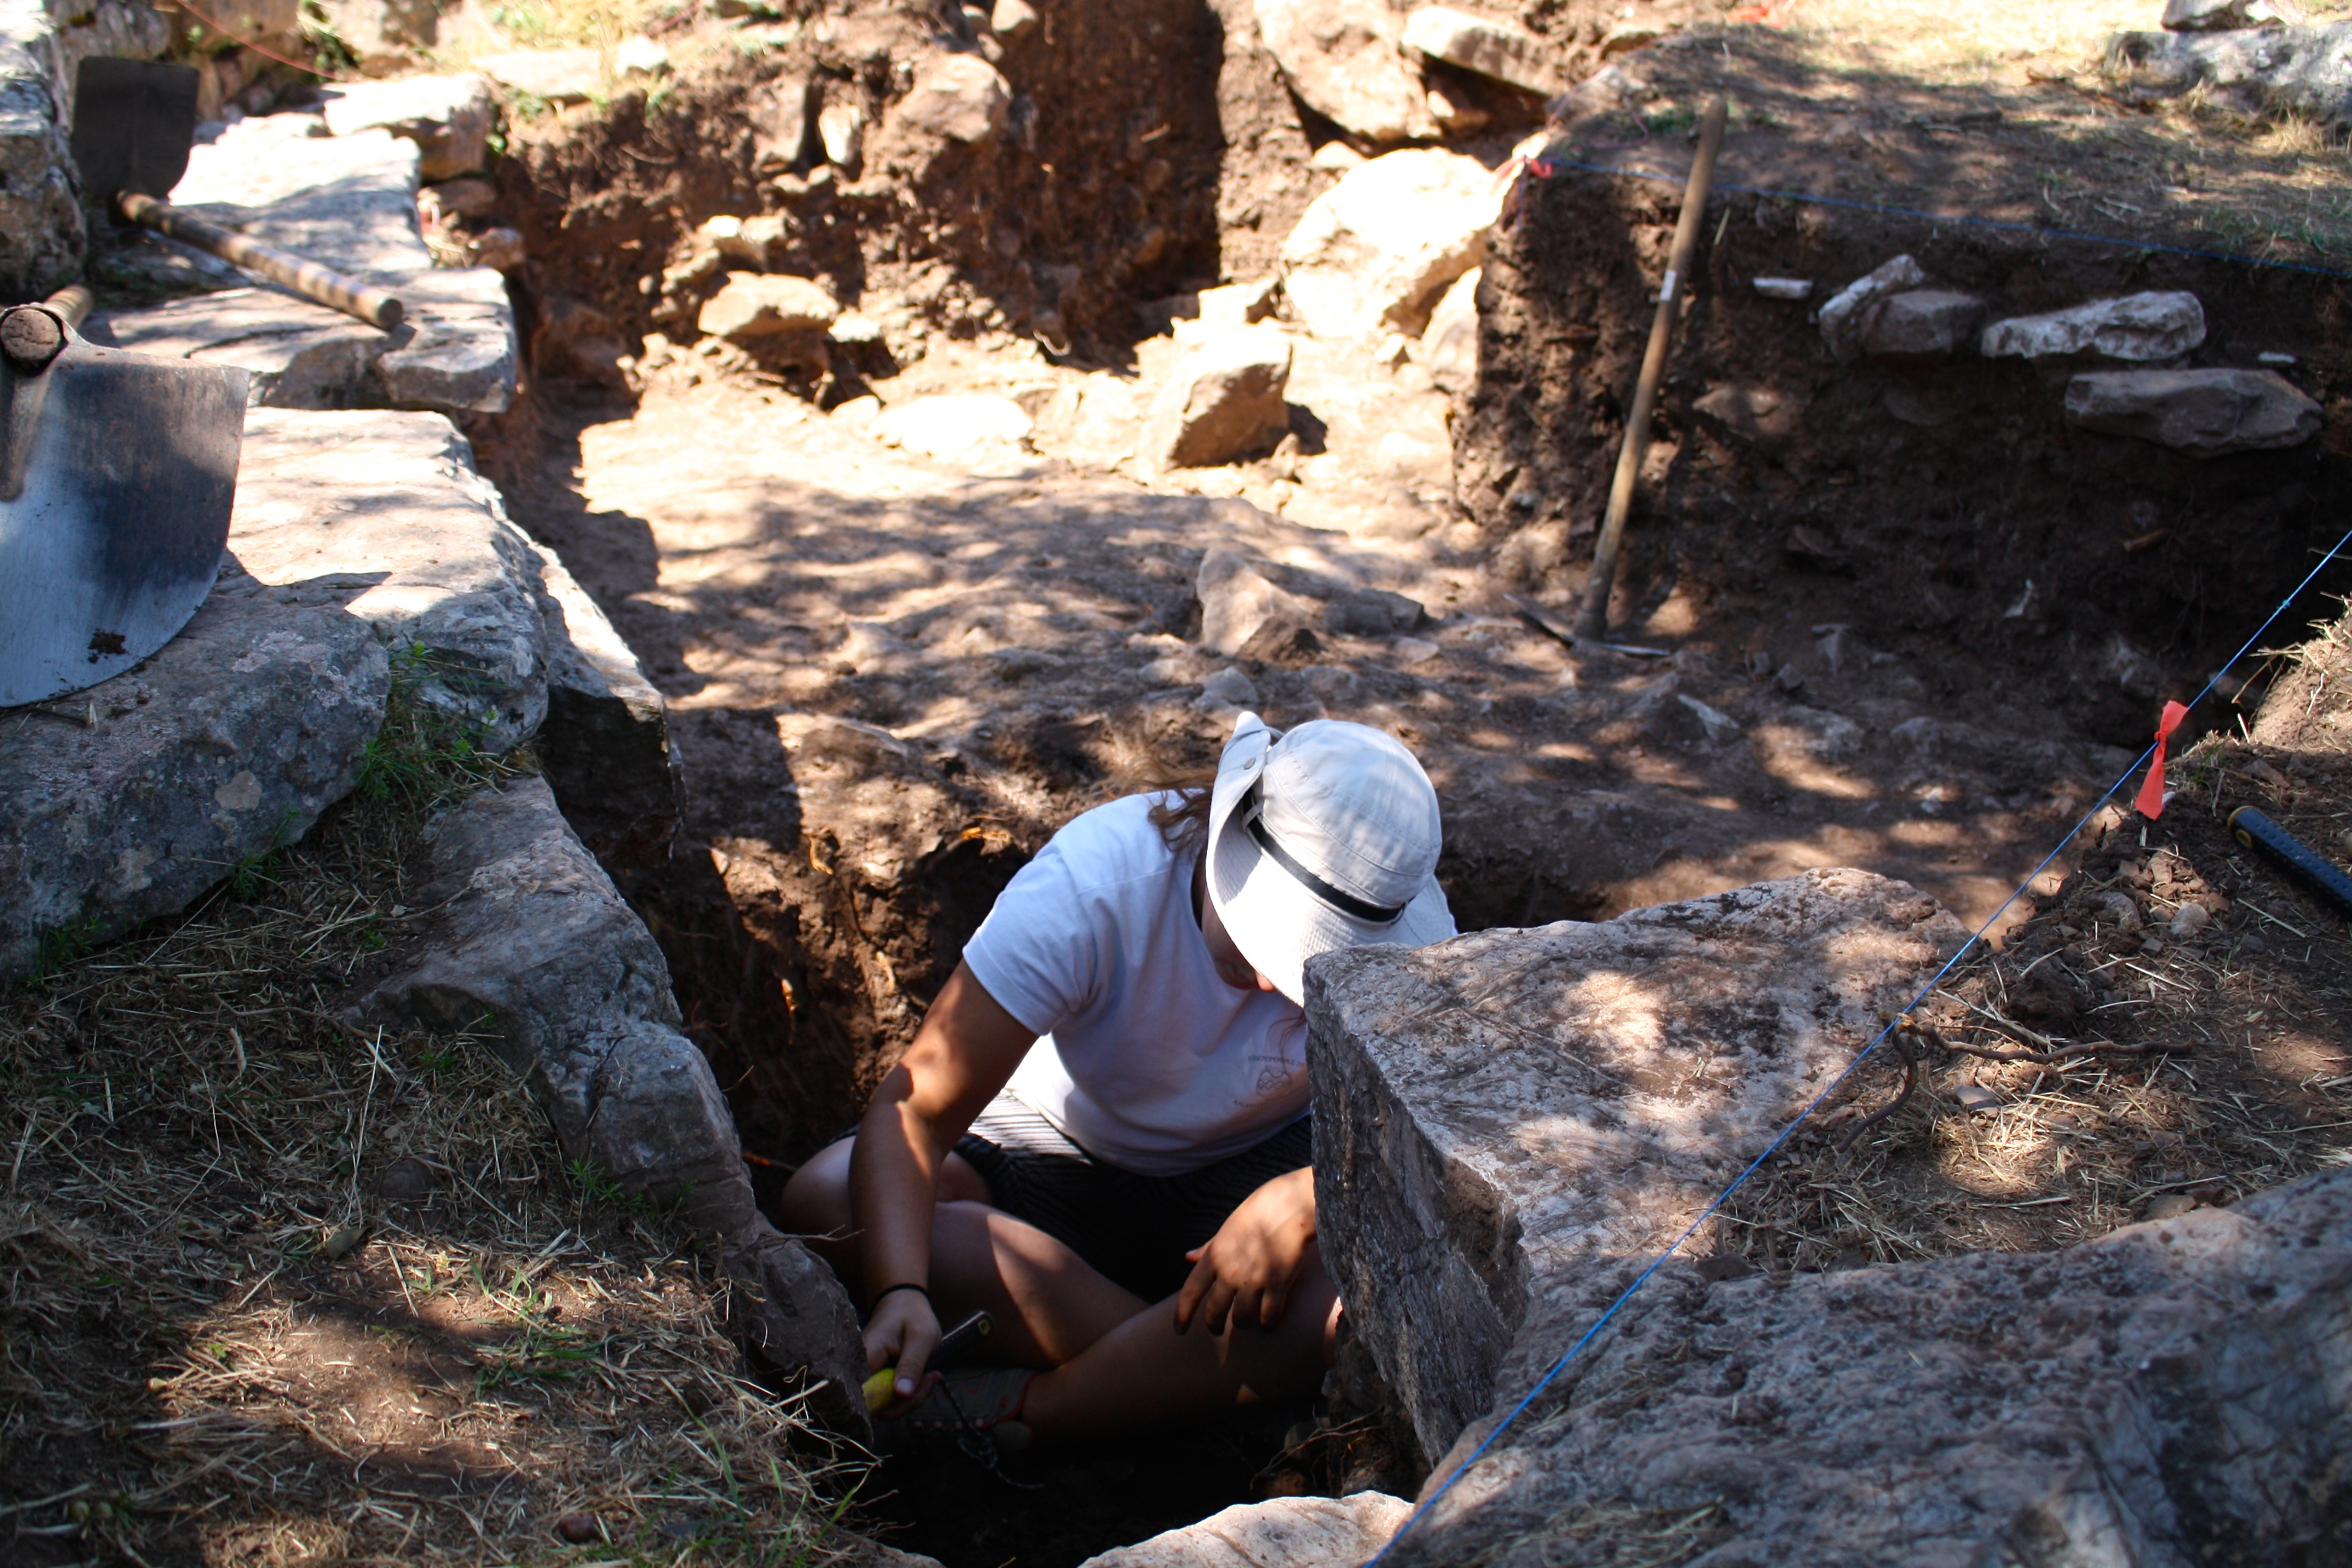 A Greek student works on excavations